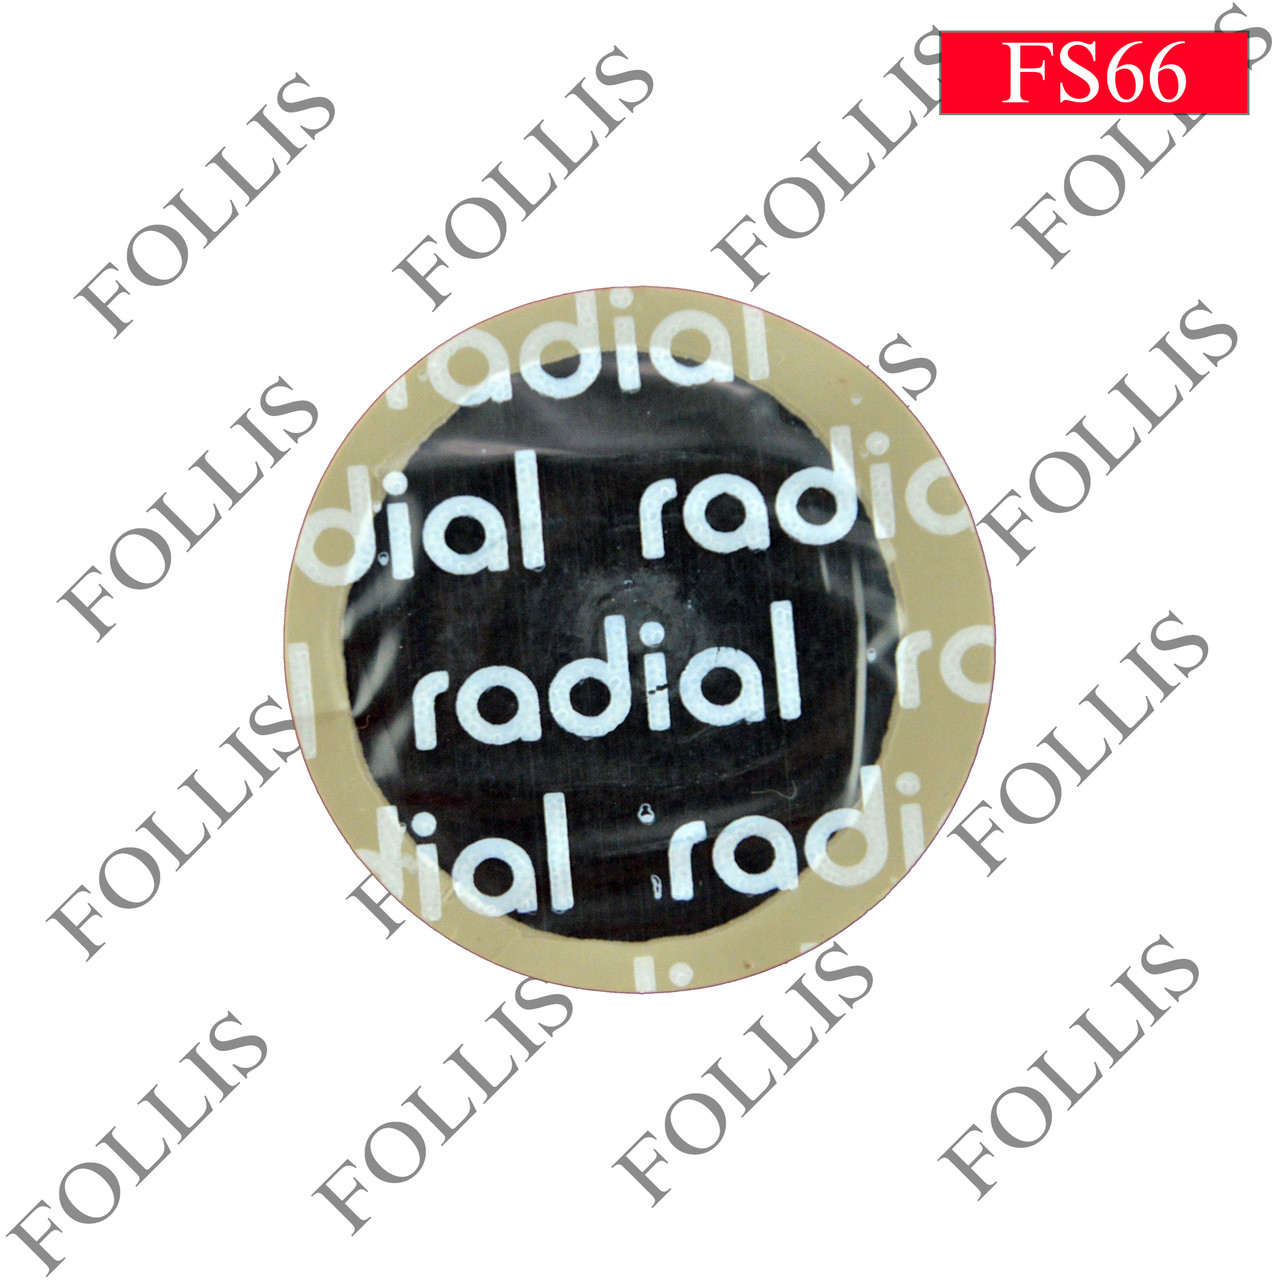 S-21 43mm (пачка)Round shape,grey and black mixed